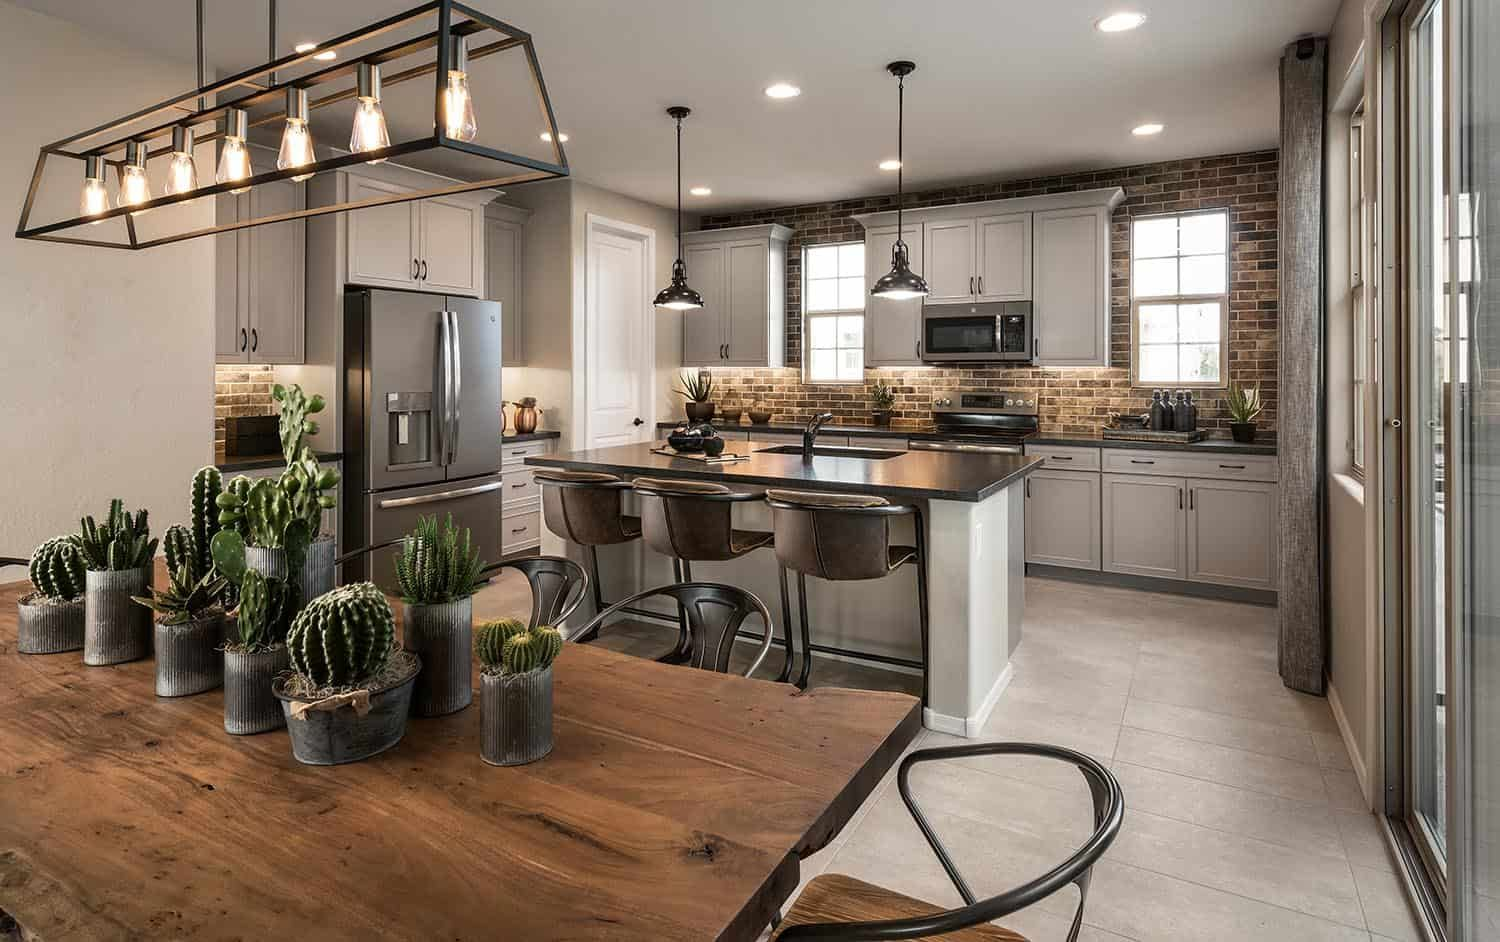 Kitchen featured in the Residence 6 By Tri Pointe Homes in Phoenix-Mesa, AZ